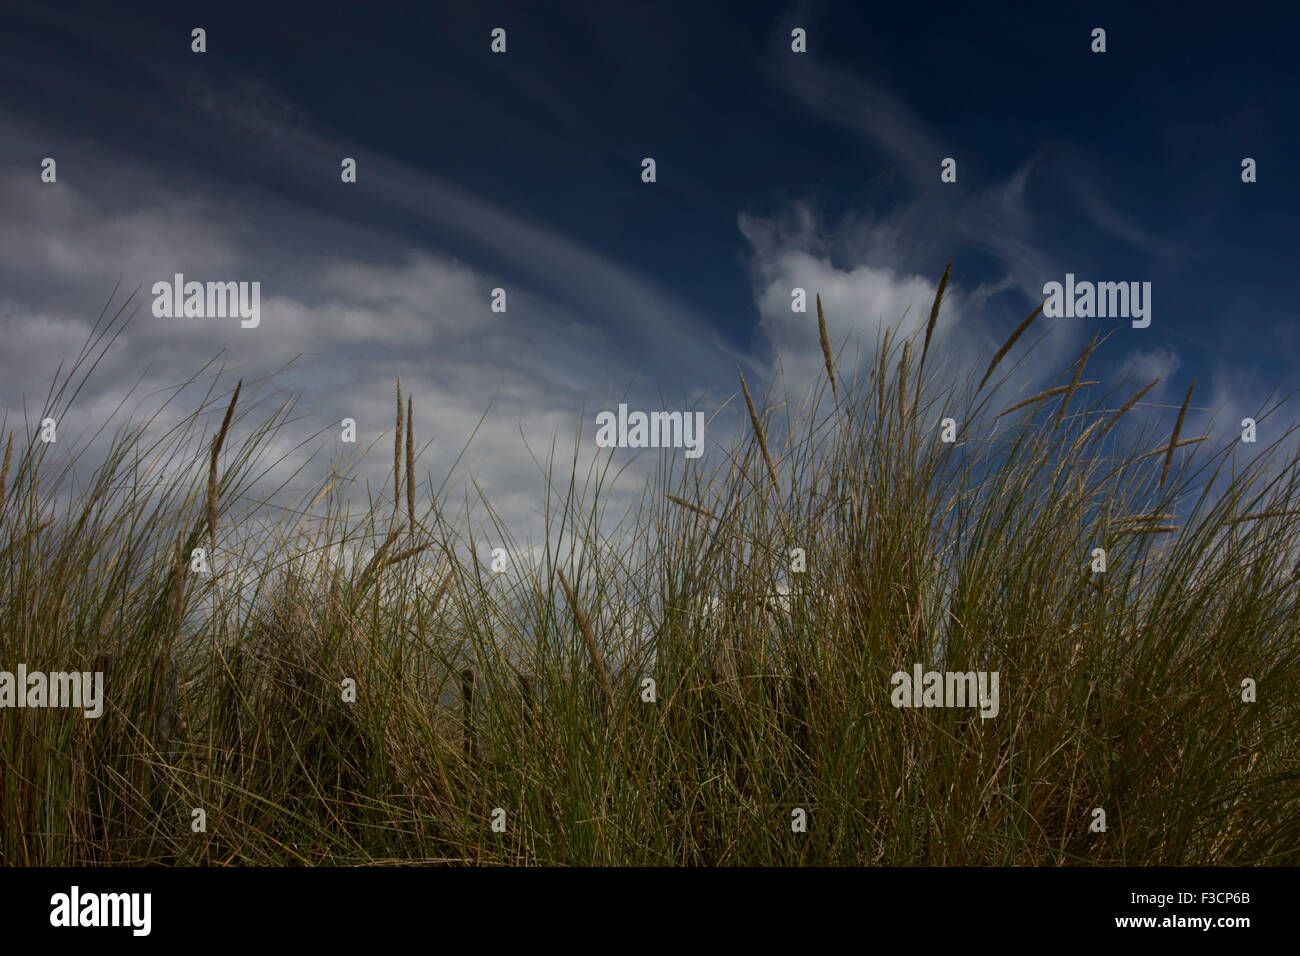 Dune grasses close up with partly cloudy blue sky in background - Stock Image